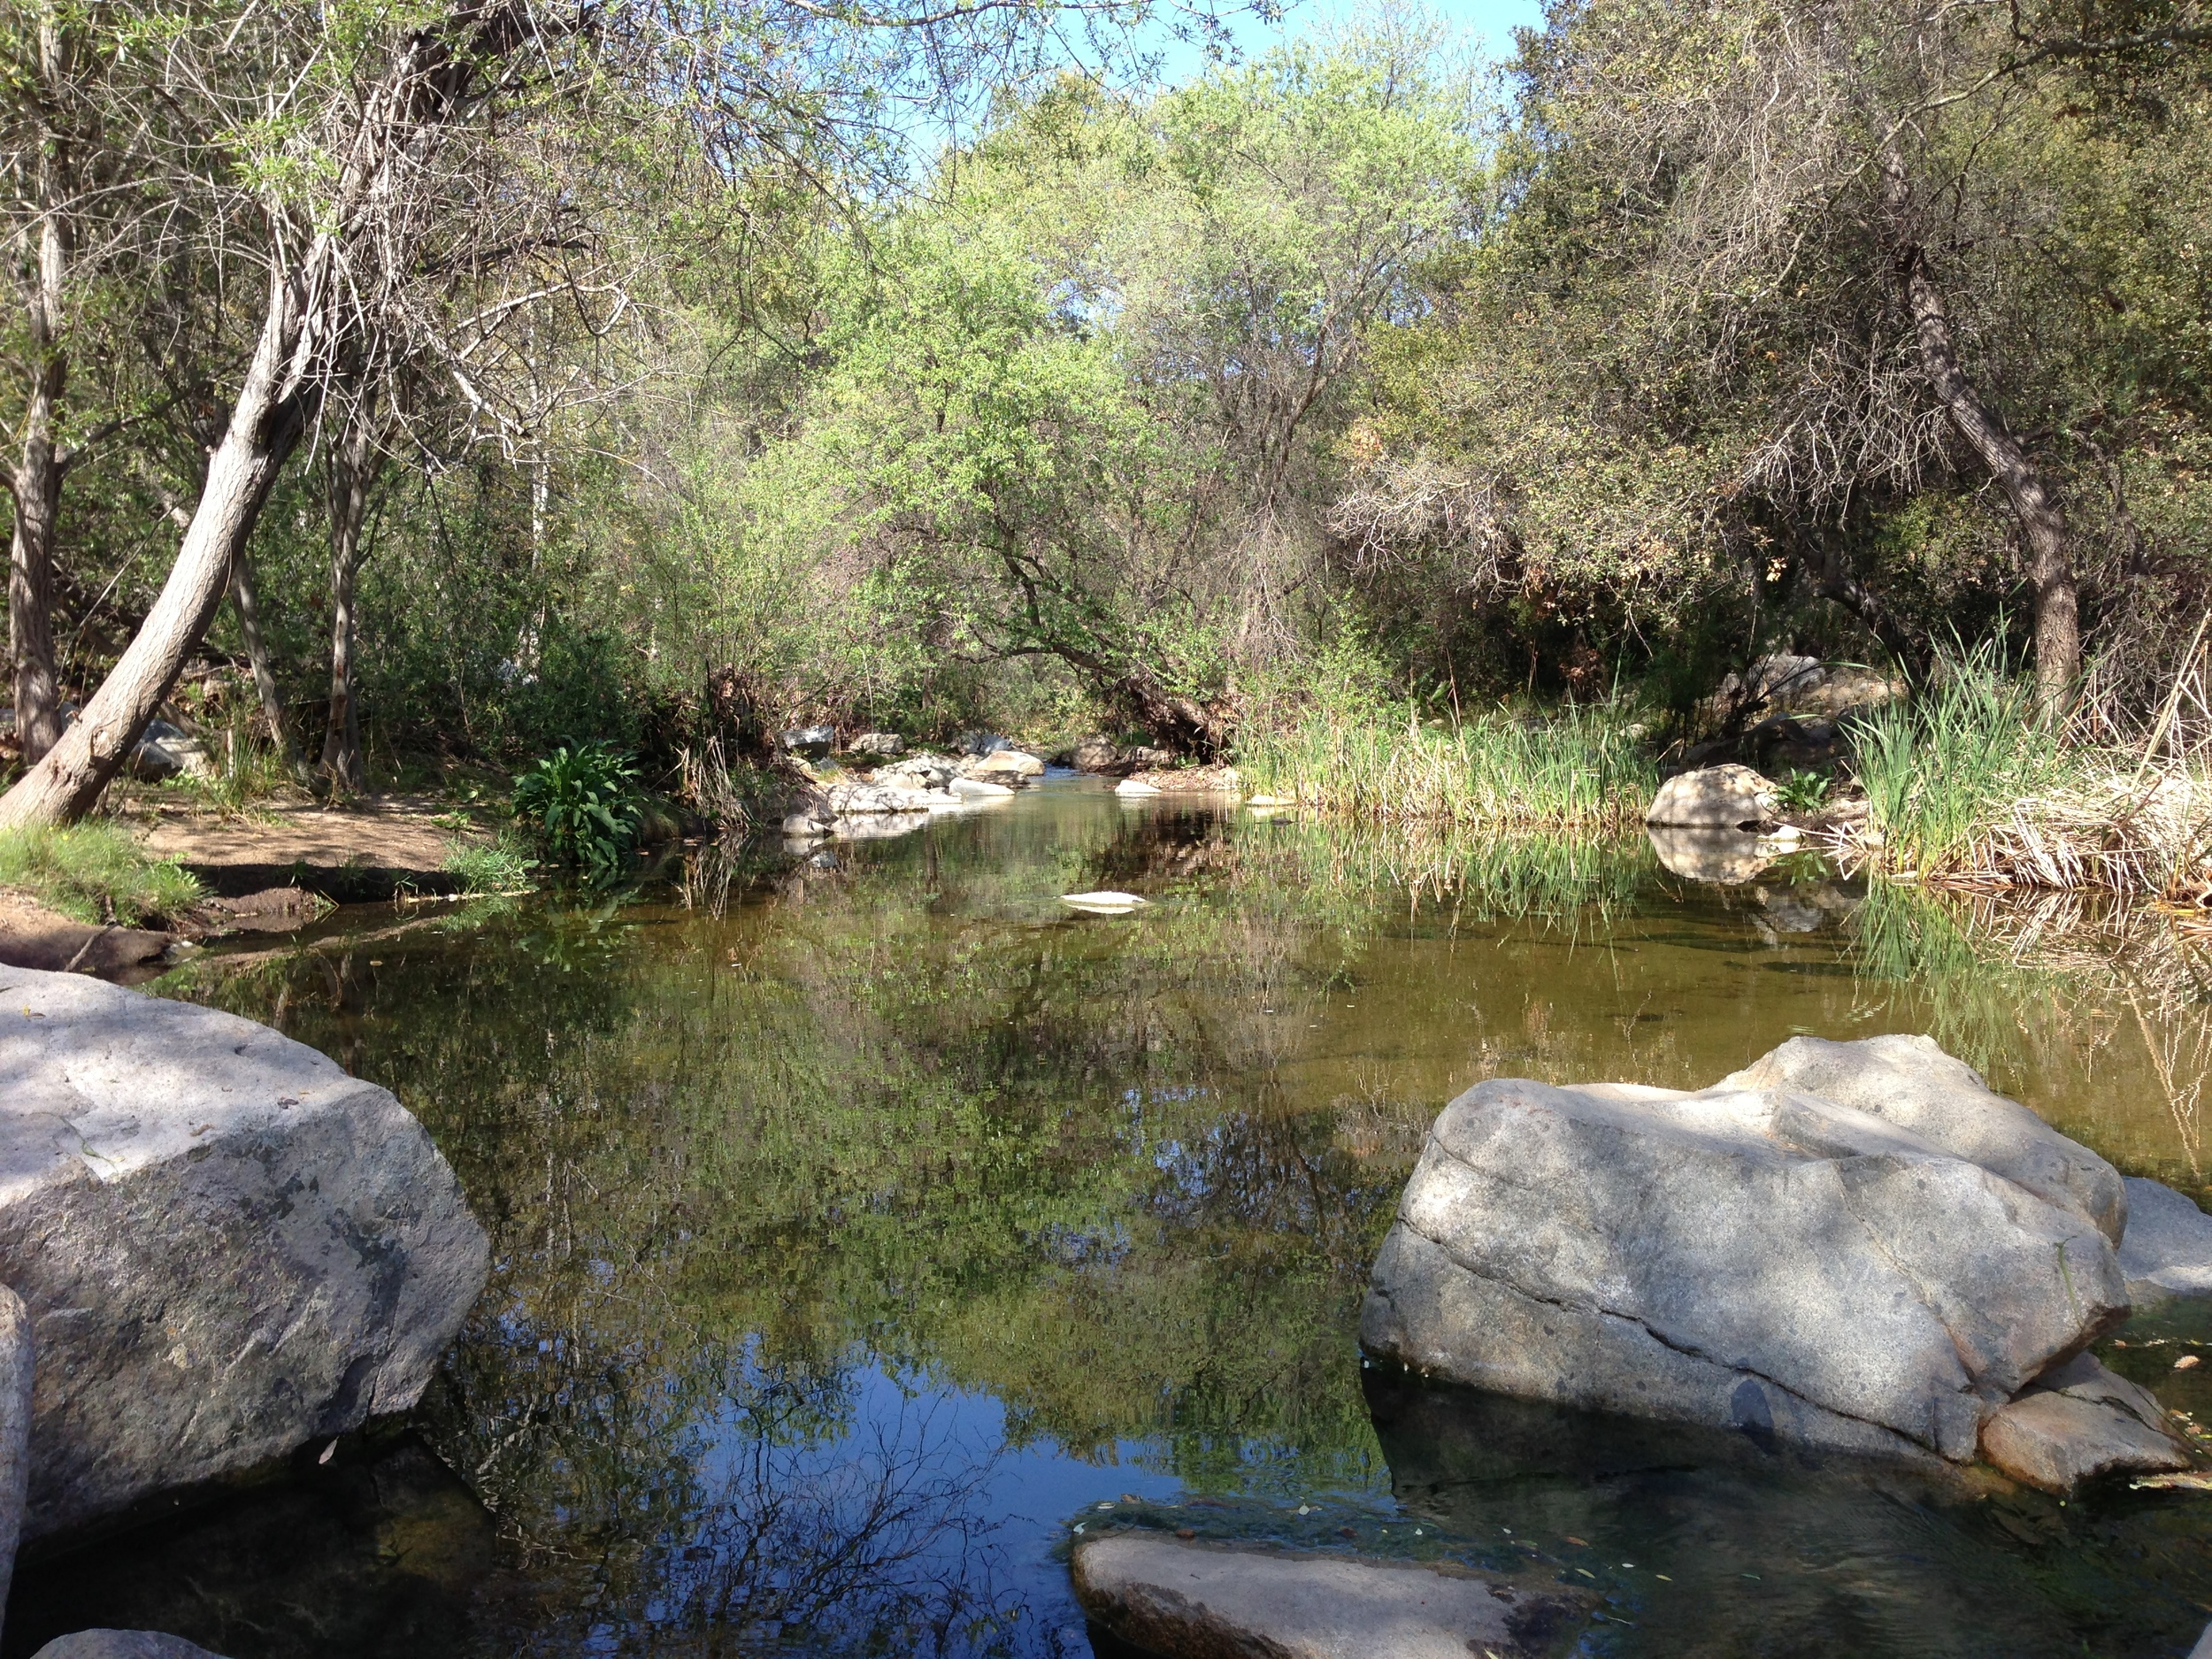 Crossing Escondido Creek, Elfin Forest